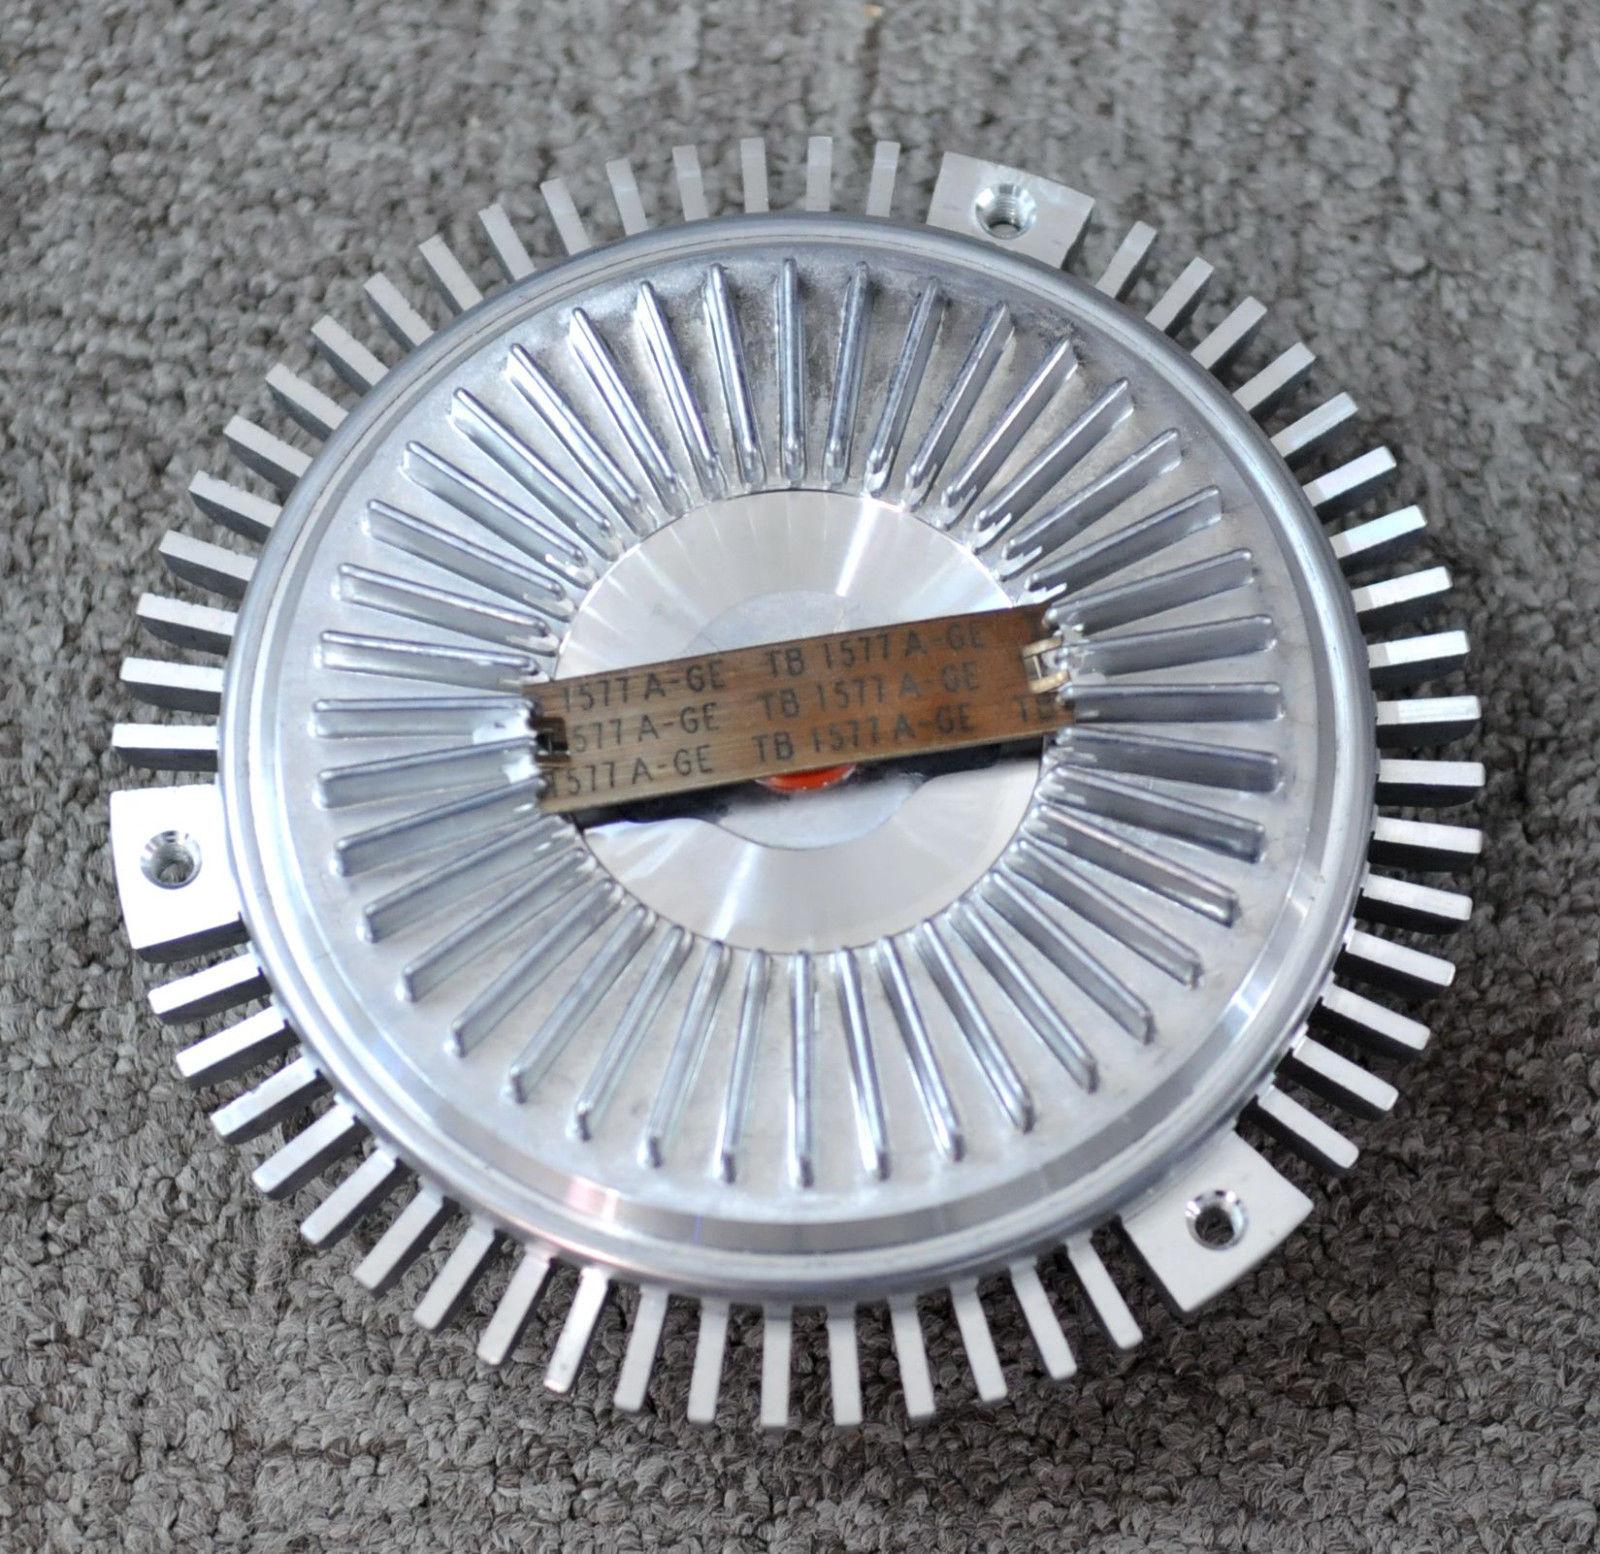 hight resolution of 2019 new radiator cooling fan clutch for bmw 3 series 5 series e36 e46 e53 e34 e39 from reach autoparts 38 41 dhgate com